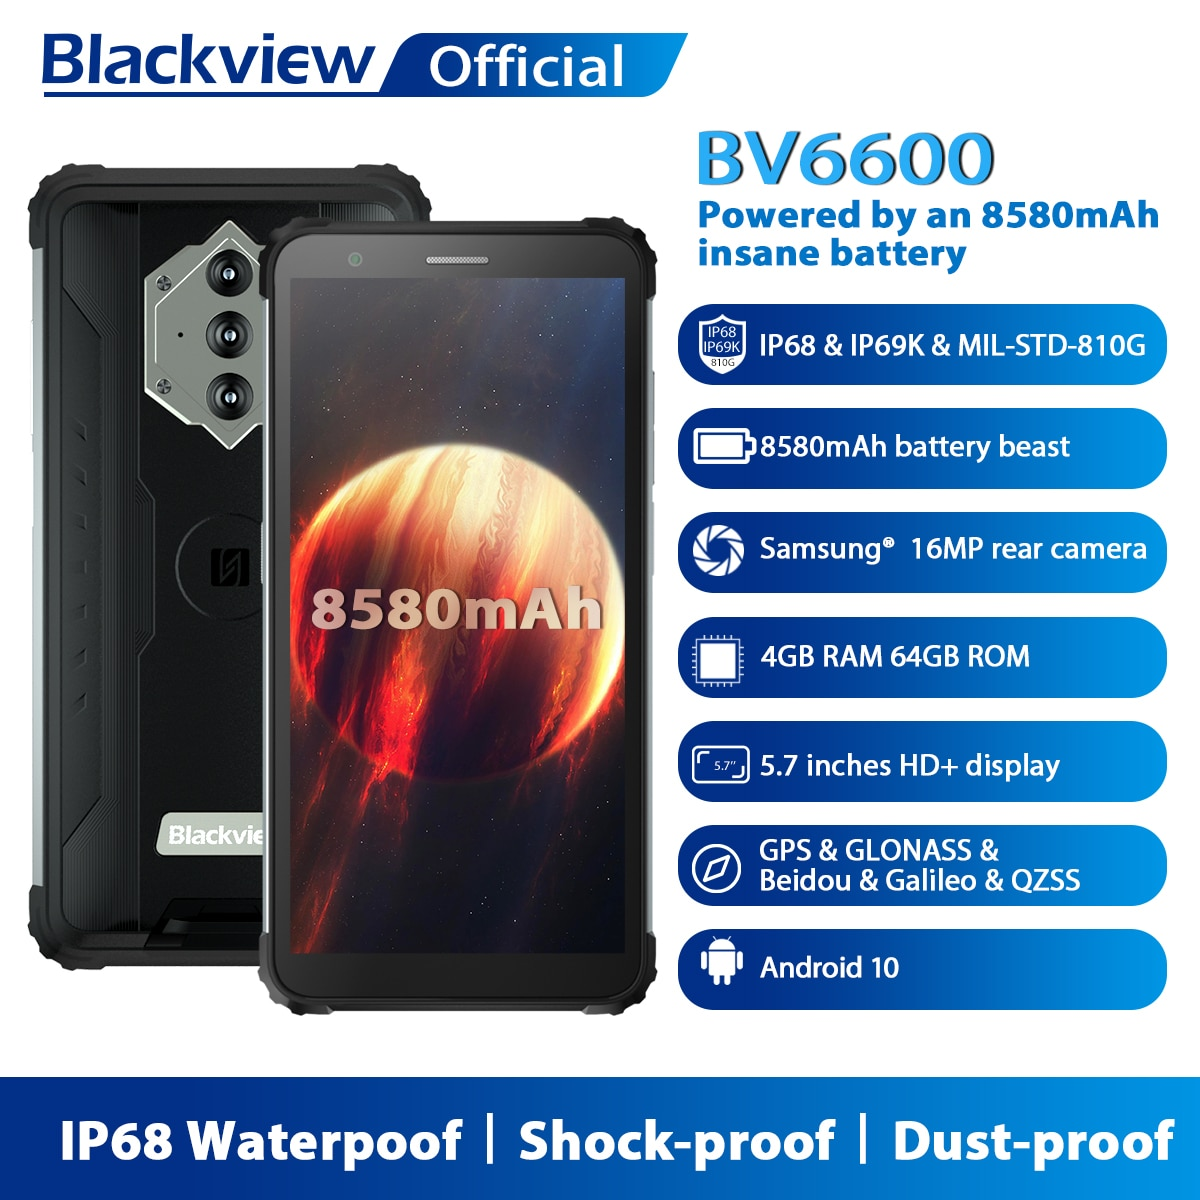 """Blackview BV6600 IP68 Waterproof 8580mAh Rugged Smartphone Octa Core 4GB+64GB 5.7"""" FHD Mobile Phone 16MP Camera NFC Android 10"""